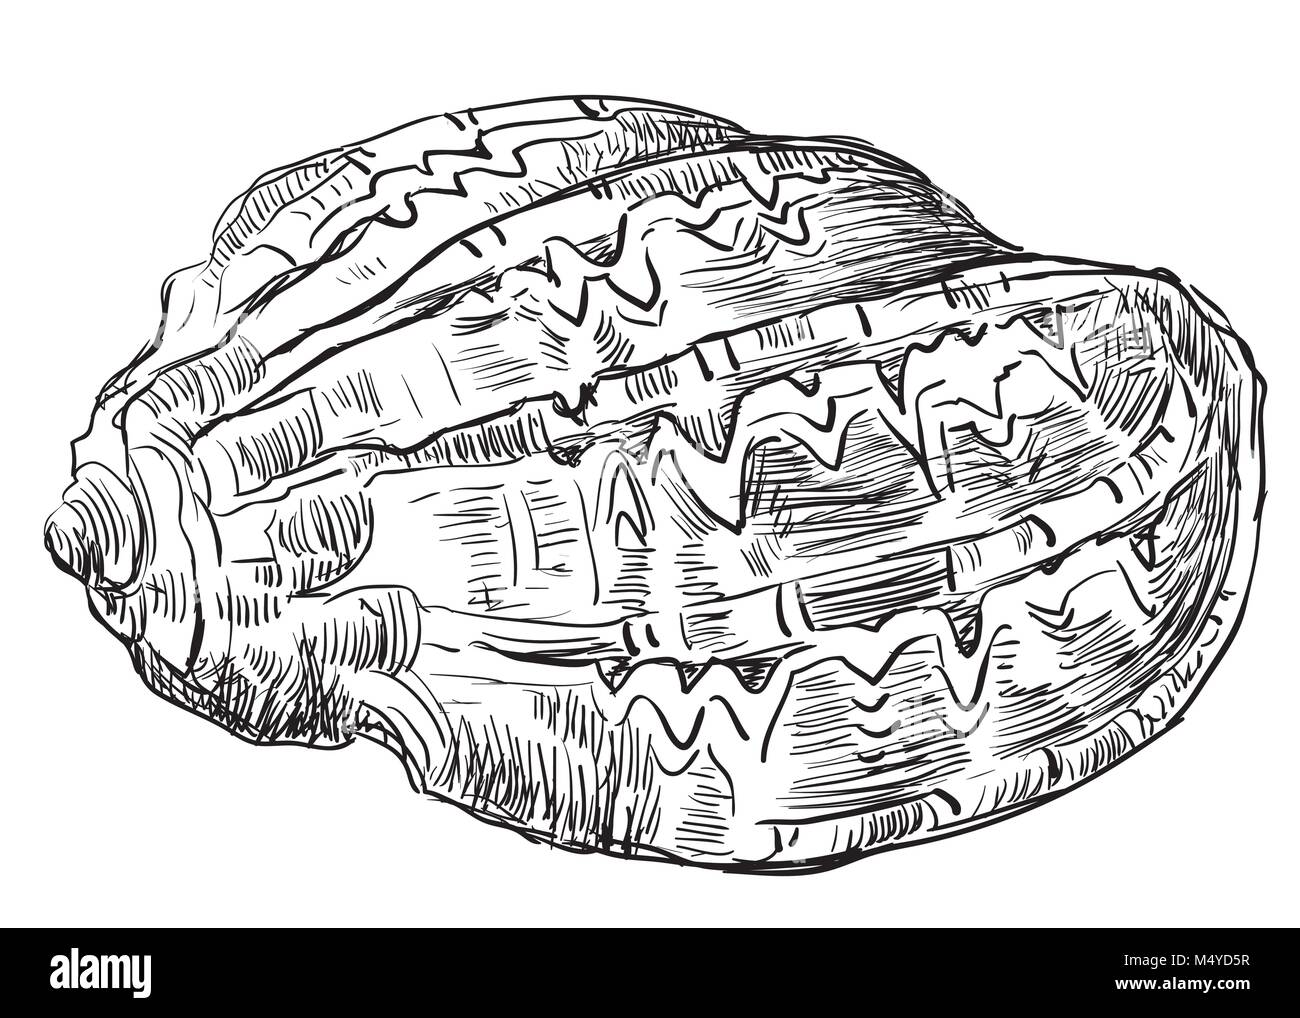 Hand drawing sketch of seashell. Vector monochrome illustration of seashell isolated on white background. - Stock Image